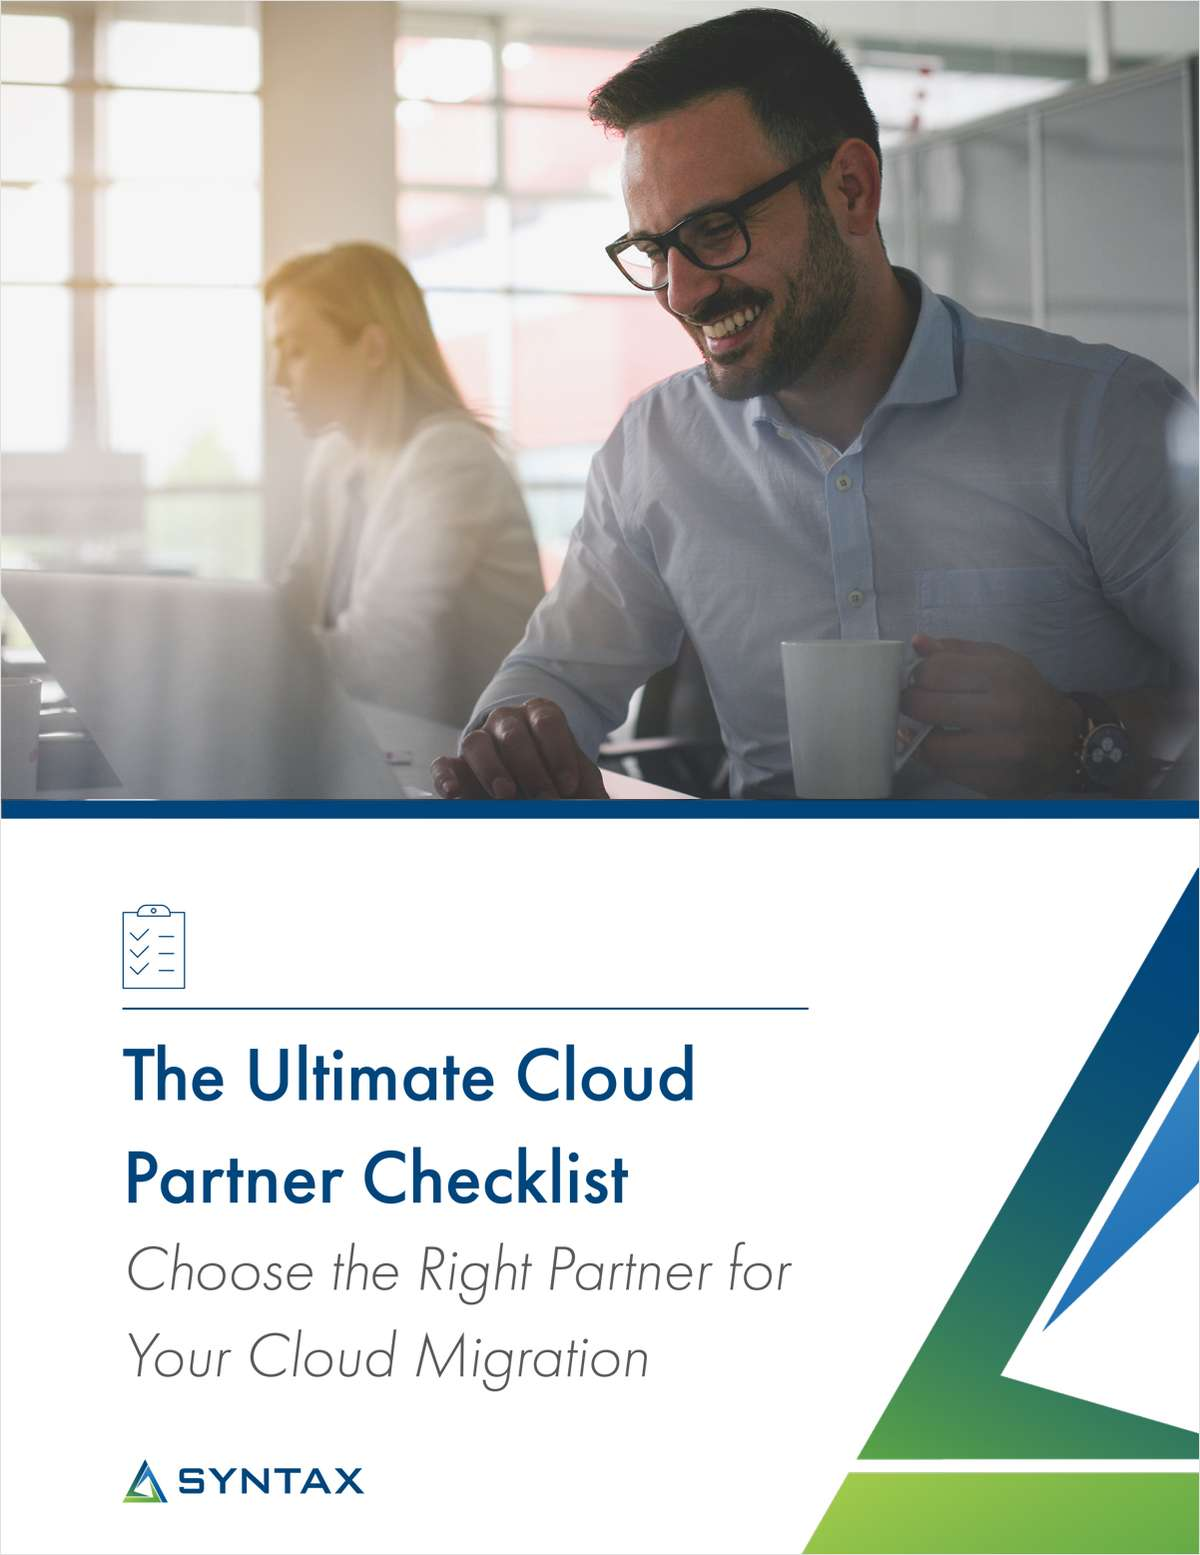 The Ultimate Cloud Partner Checklist: Choose the Right Partner for Your Cloud Migration